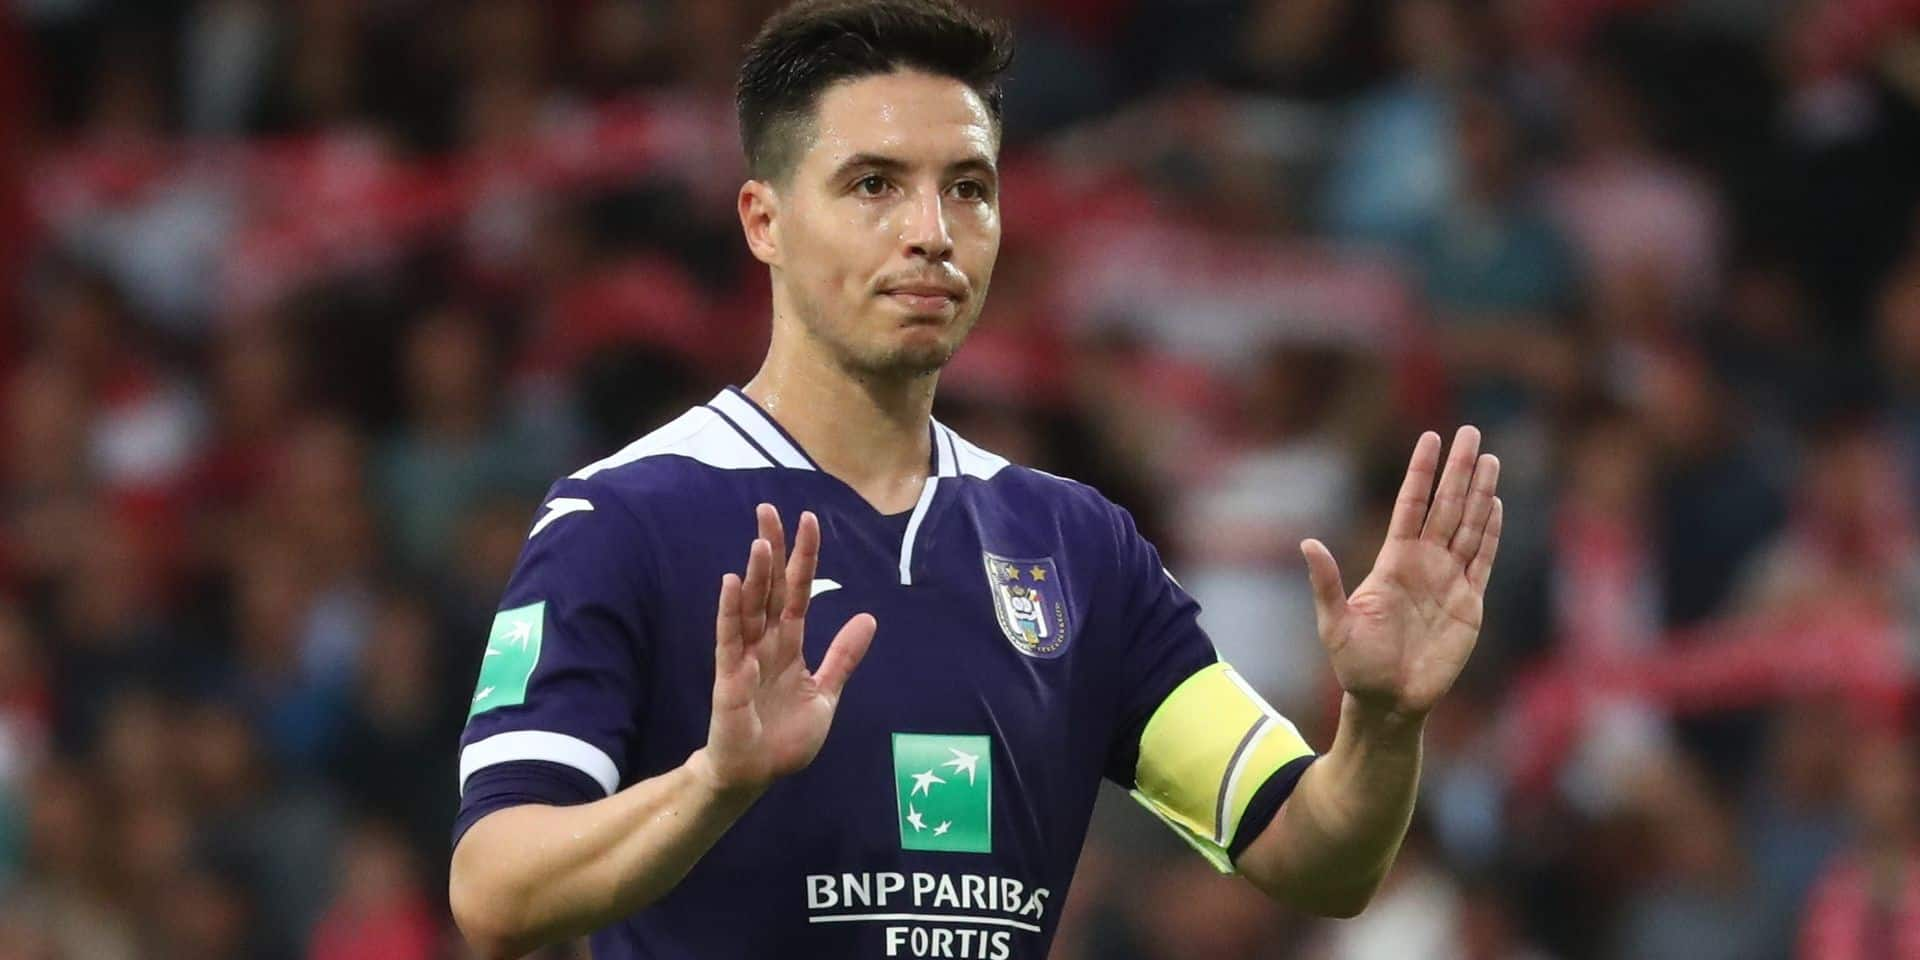 Anderlecht's Samir Nasri looks dejected after a soccer match between KV Kortrijk vs RSC Anderlecht, Saturday 17 August 2019 in Kortrijk, on the fourth day of the 'Jupiler Pro League' Belgian soccer championship season 2019-2020. BELGA PHOTO VIRGINIE LEFOUR